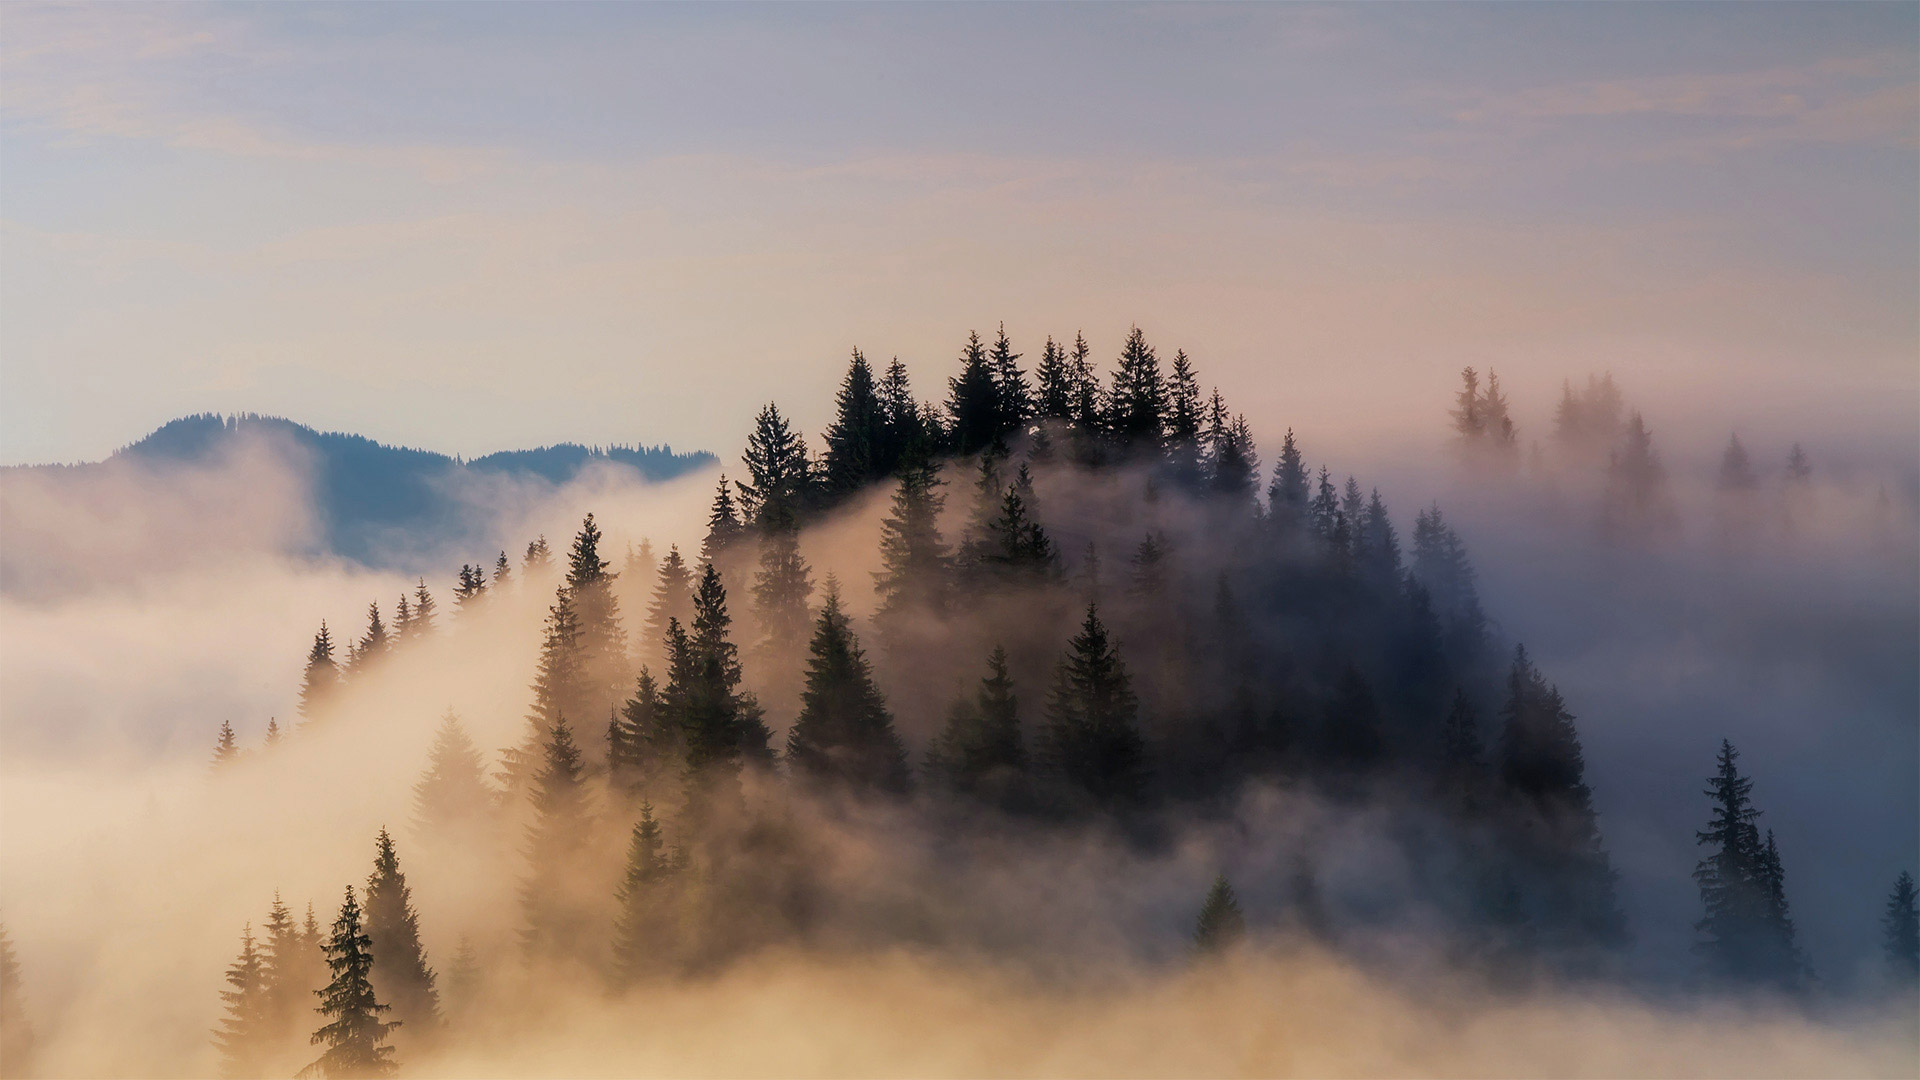 Fog shrouds the Bavarian Alps in Germany (© Anton Petrus/Getty Images)(Bing United States)